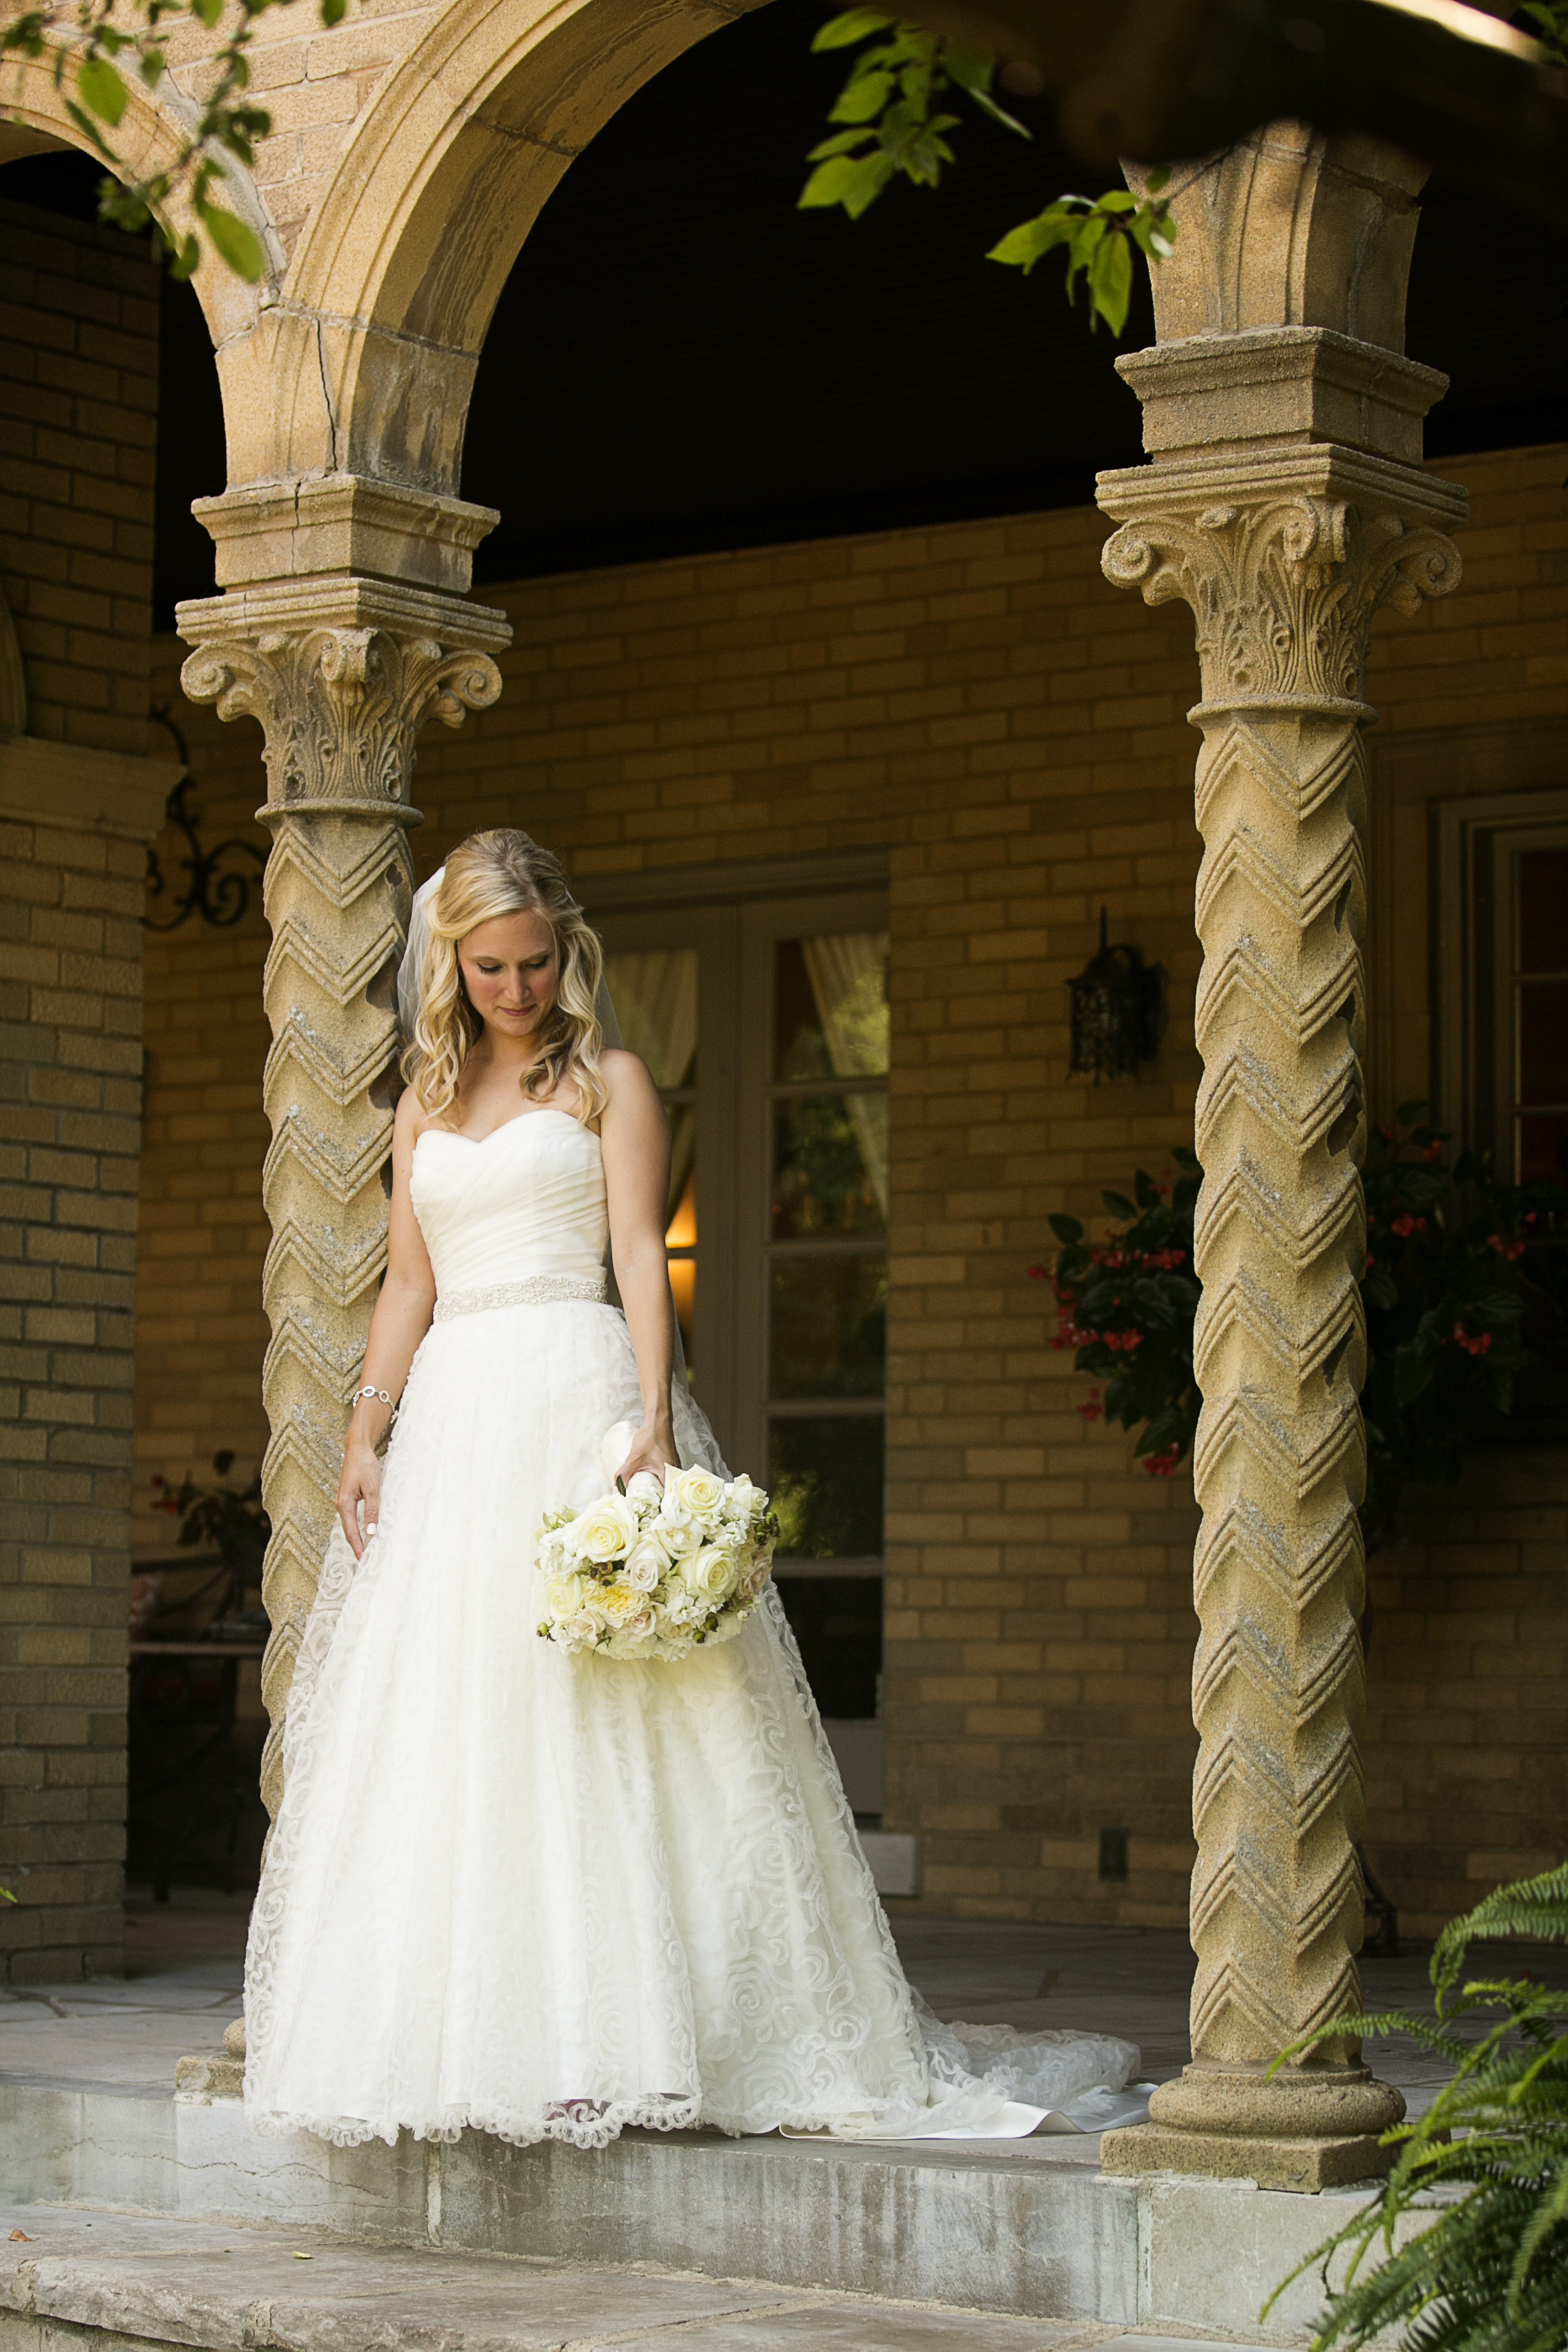 Elegant St. Louis Bride  in timeless white gown with white florals